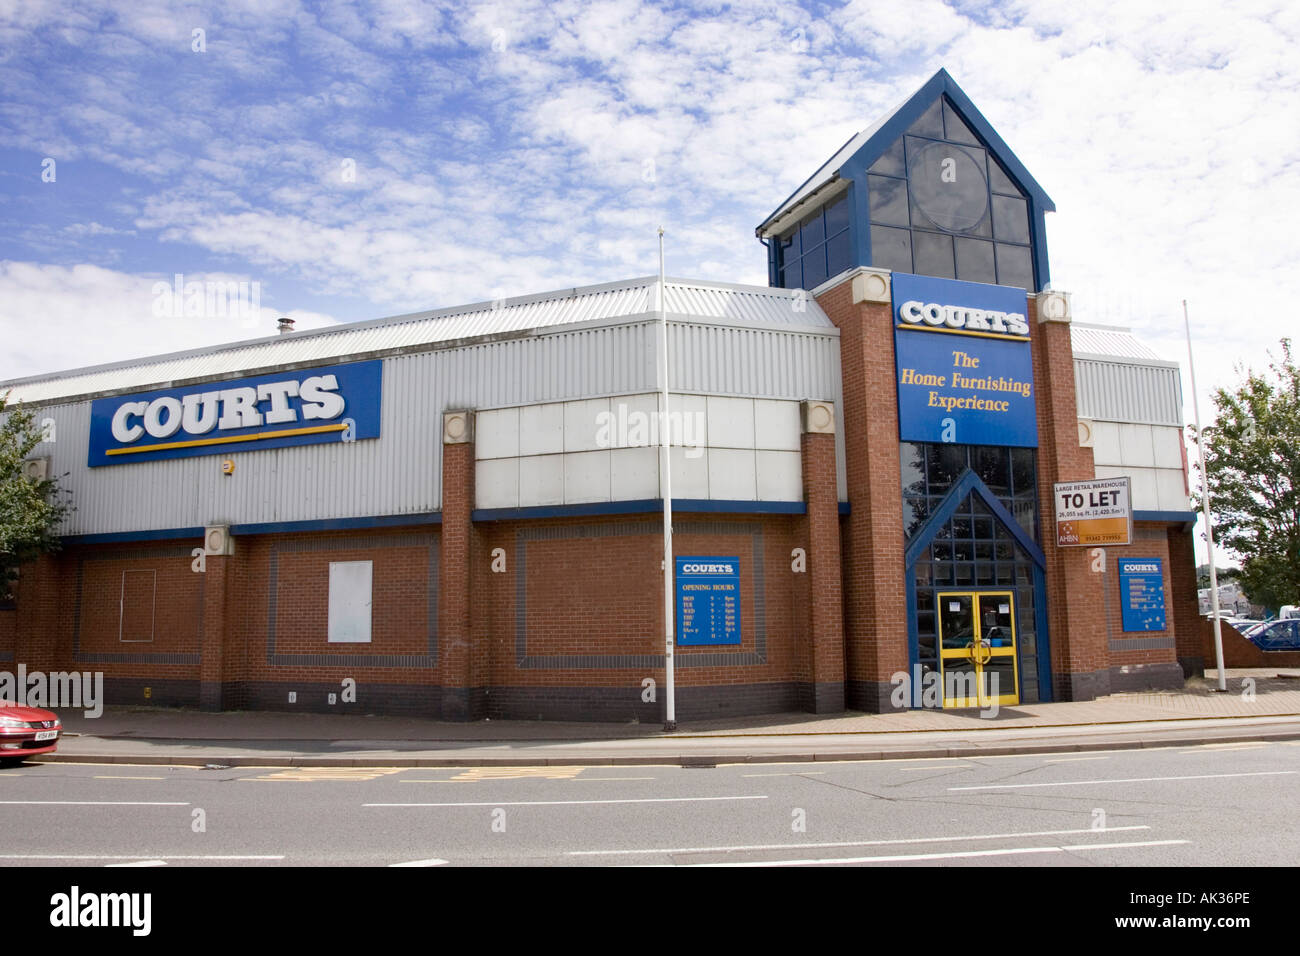 Courts Furniture Store In Worcester Uk Stock Photo Royalty Free